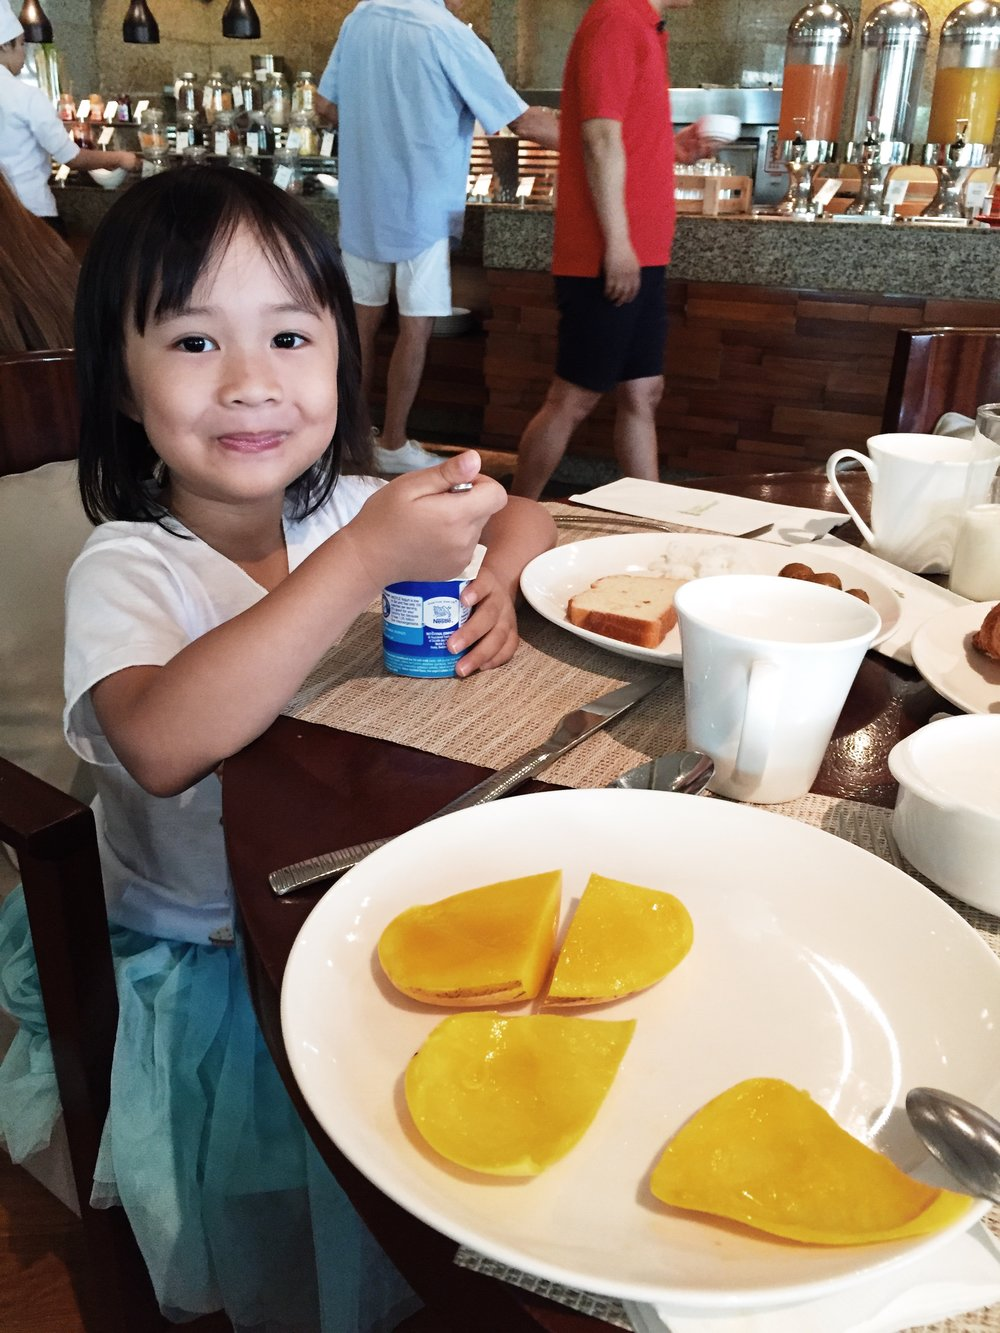 Rise and shine the next morning! Rae loves scooping out the fresh super sweet mangoes and put them in her yogurt!